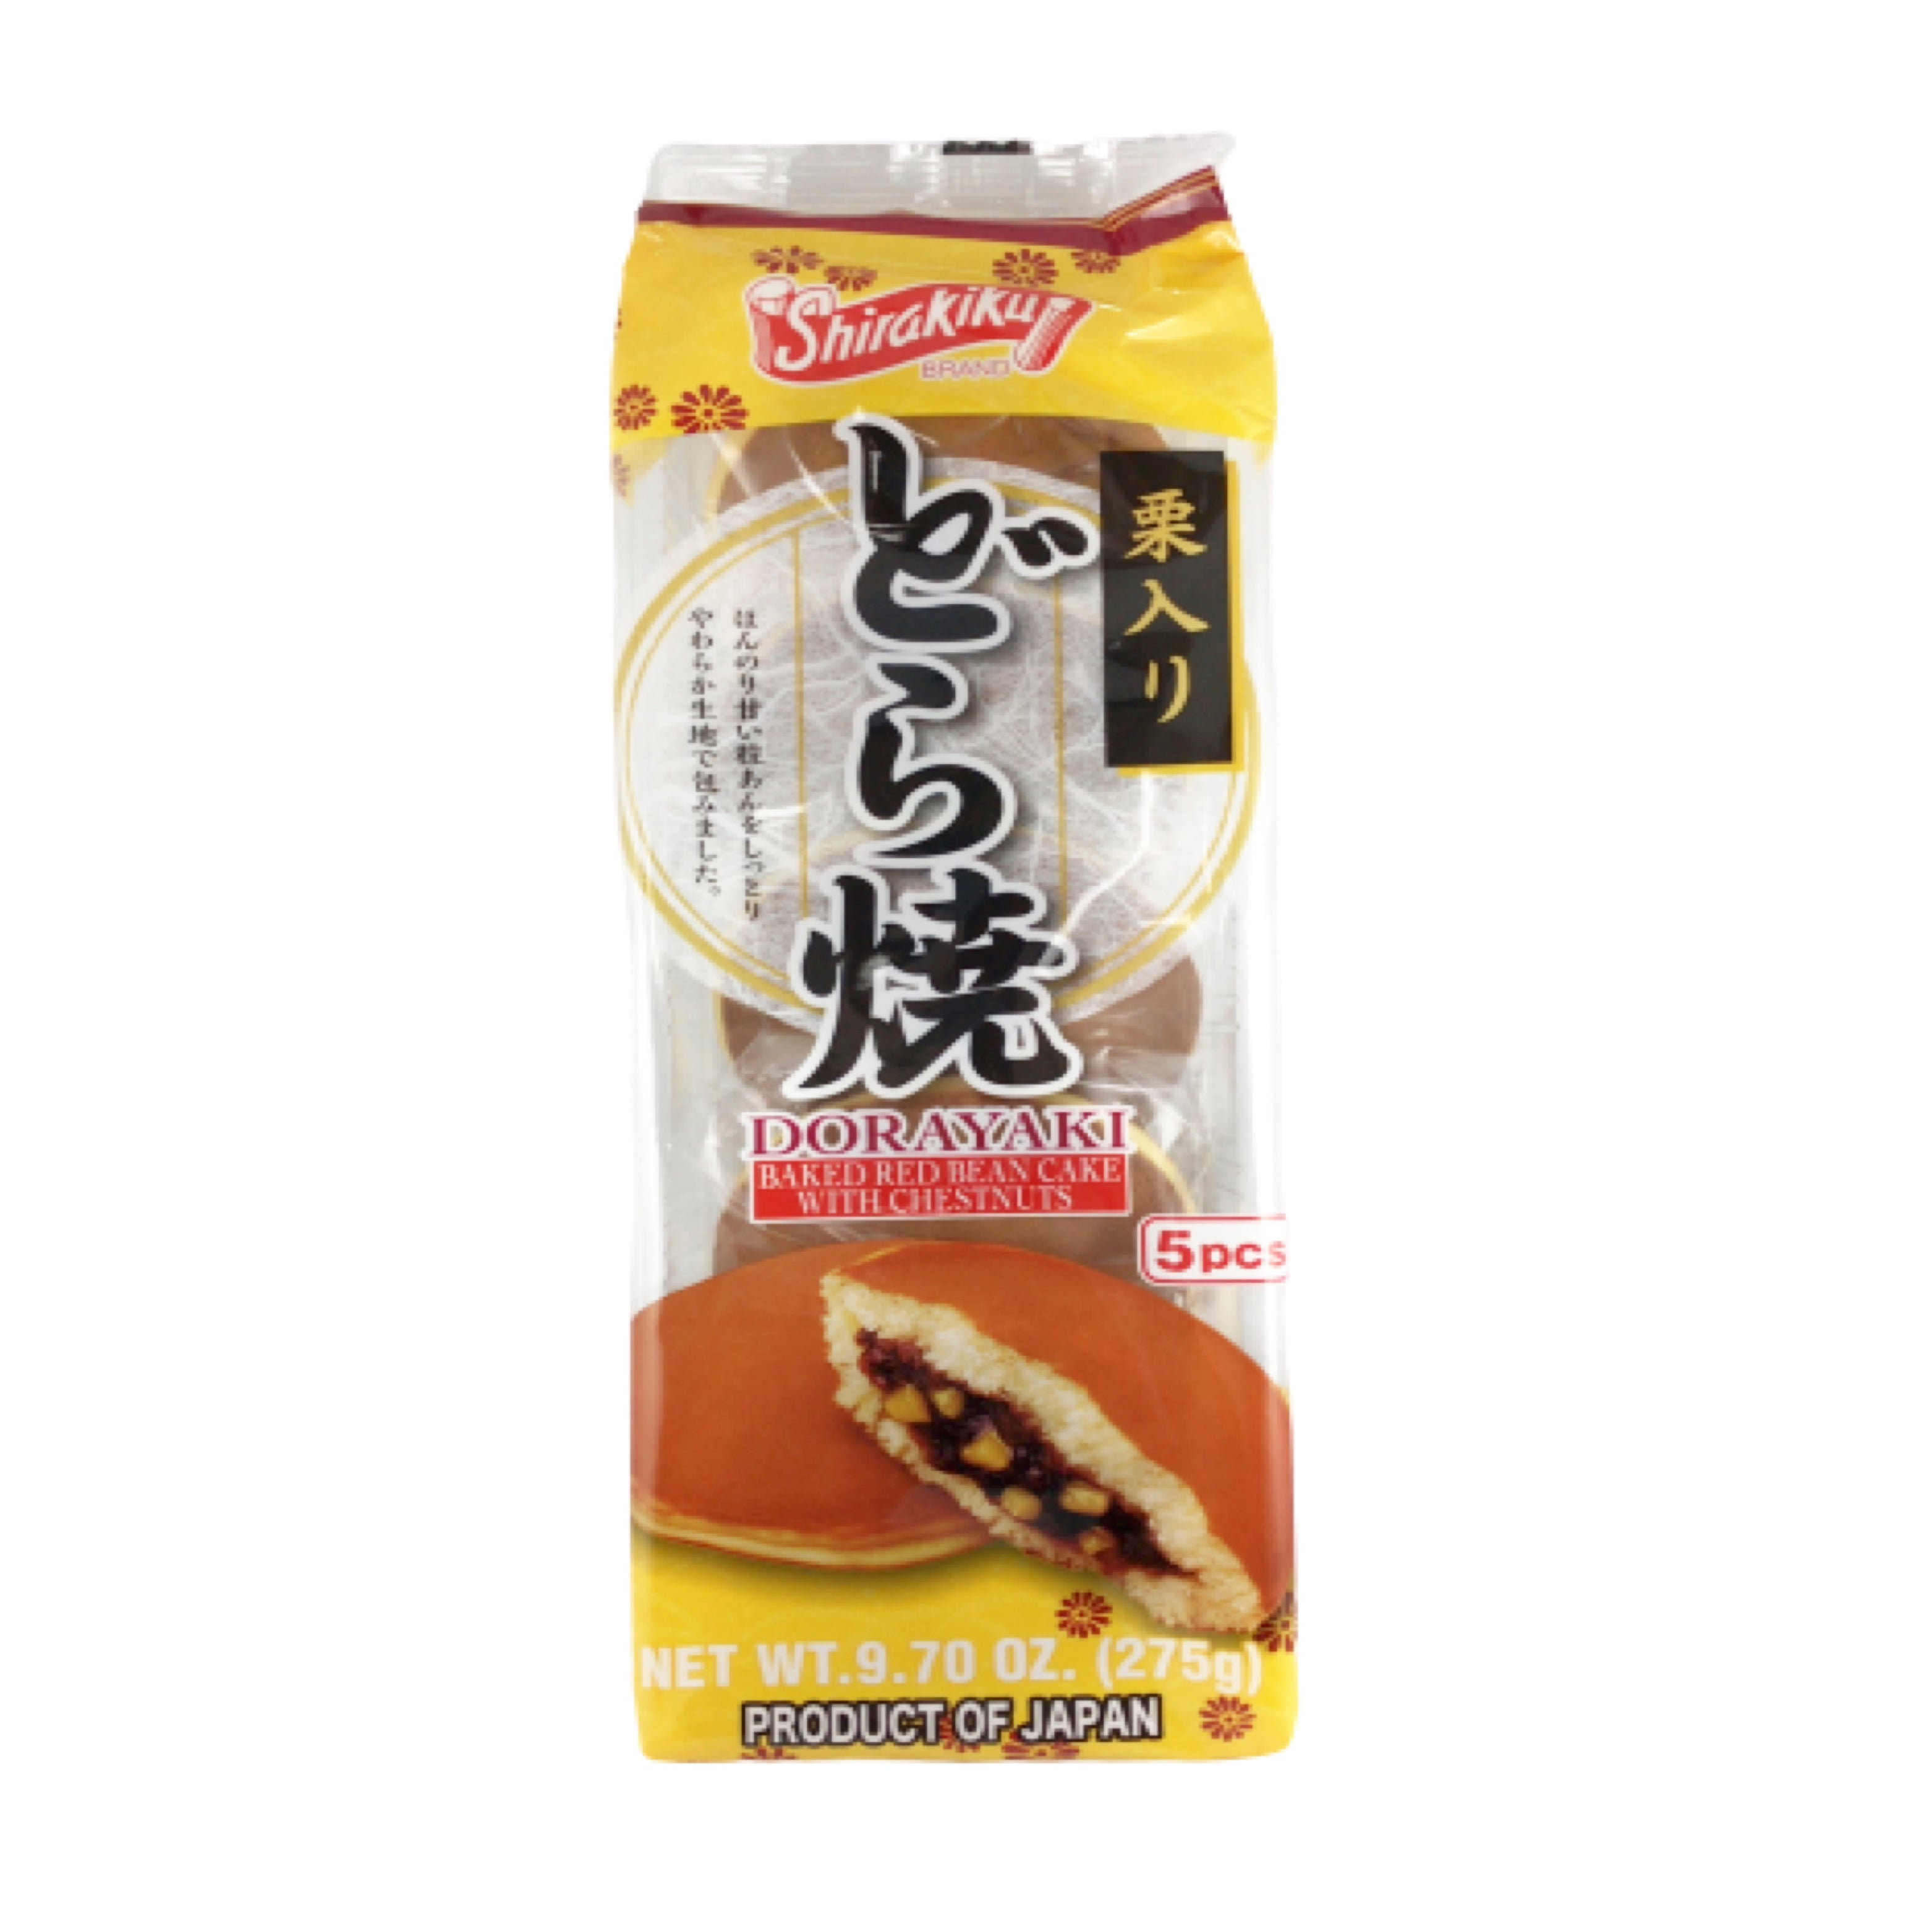 Shirakiku Dorayaki Baked Red Bean Cake with Chestnuts 紅豆栗子銅鑼燒